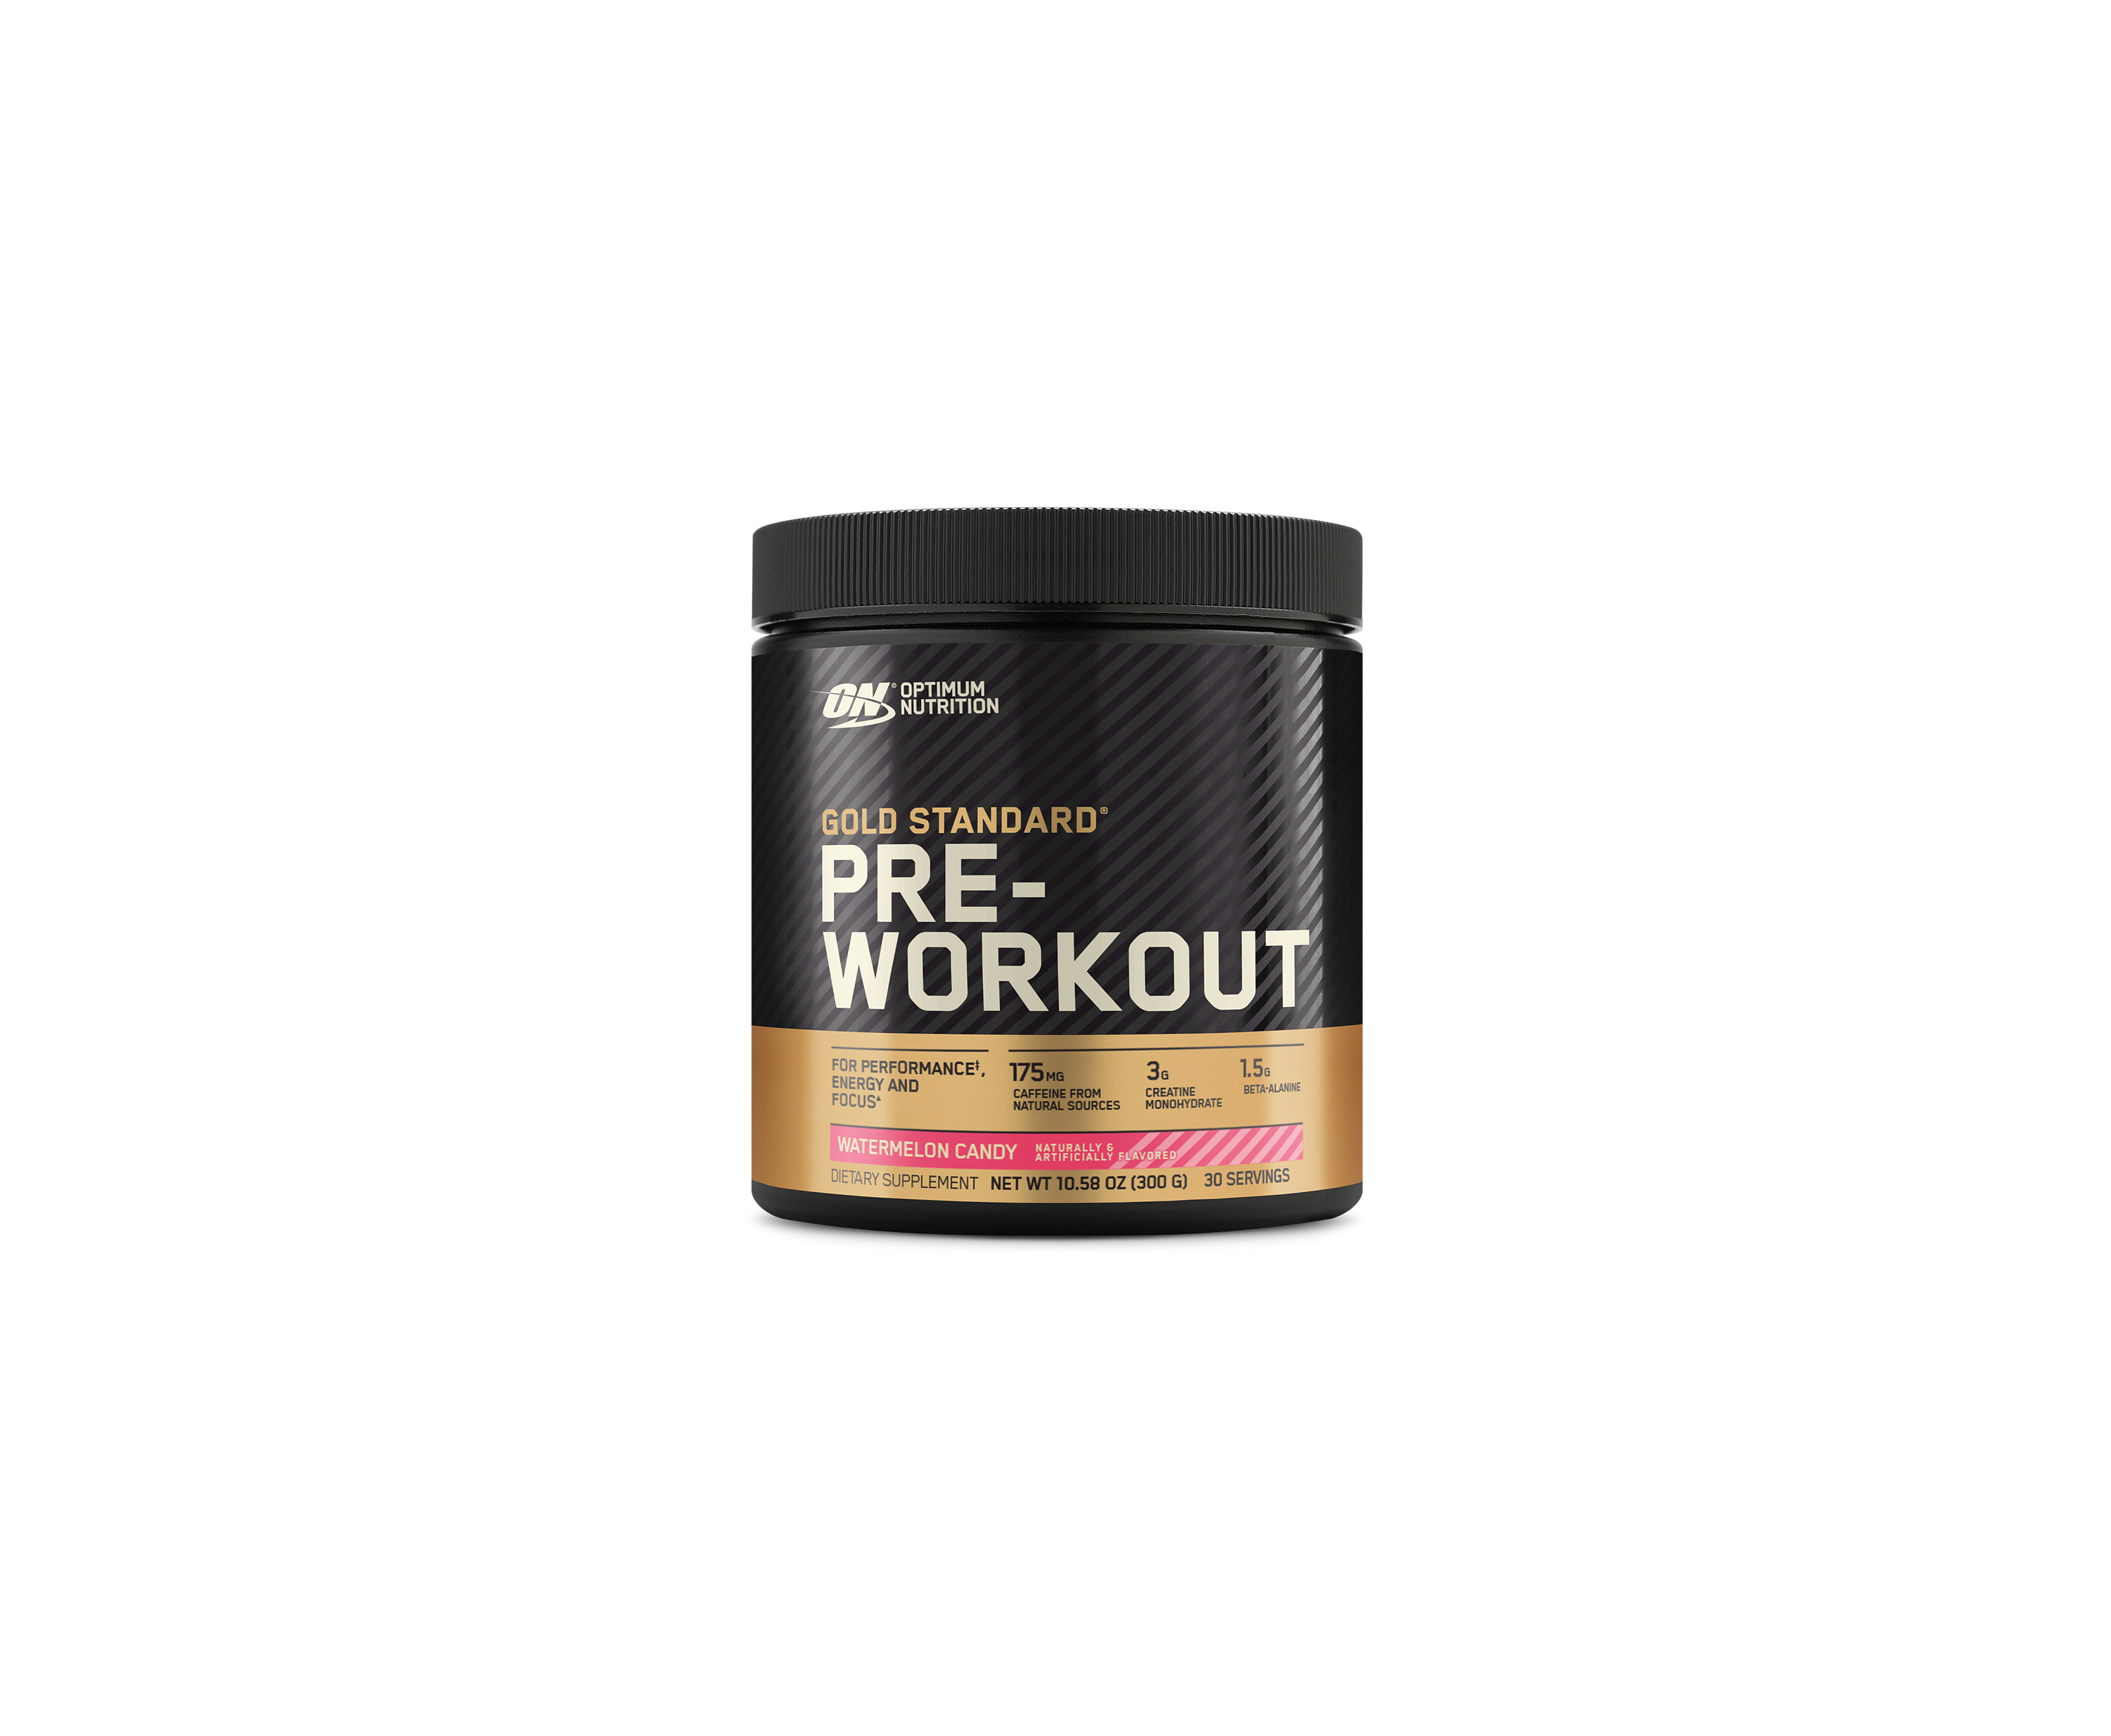 Optimum Nutrition's Gold Standard Pre Workout in Watermelon Candy flavor.